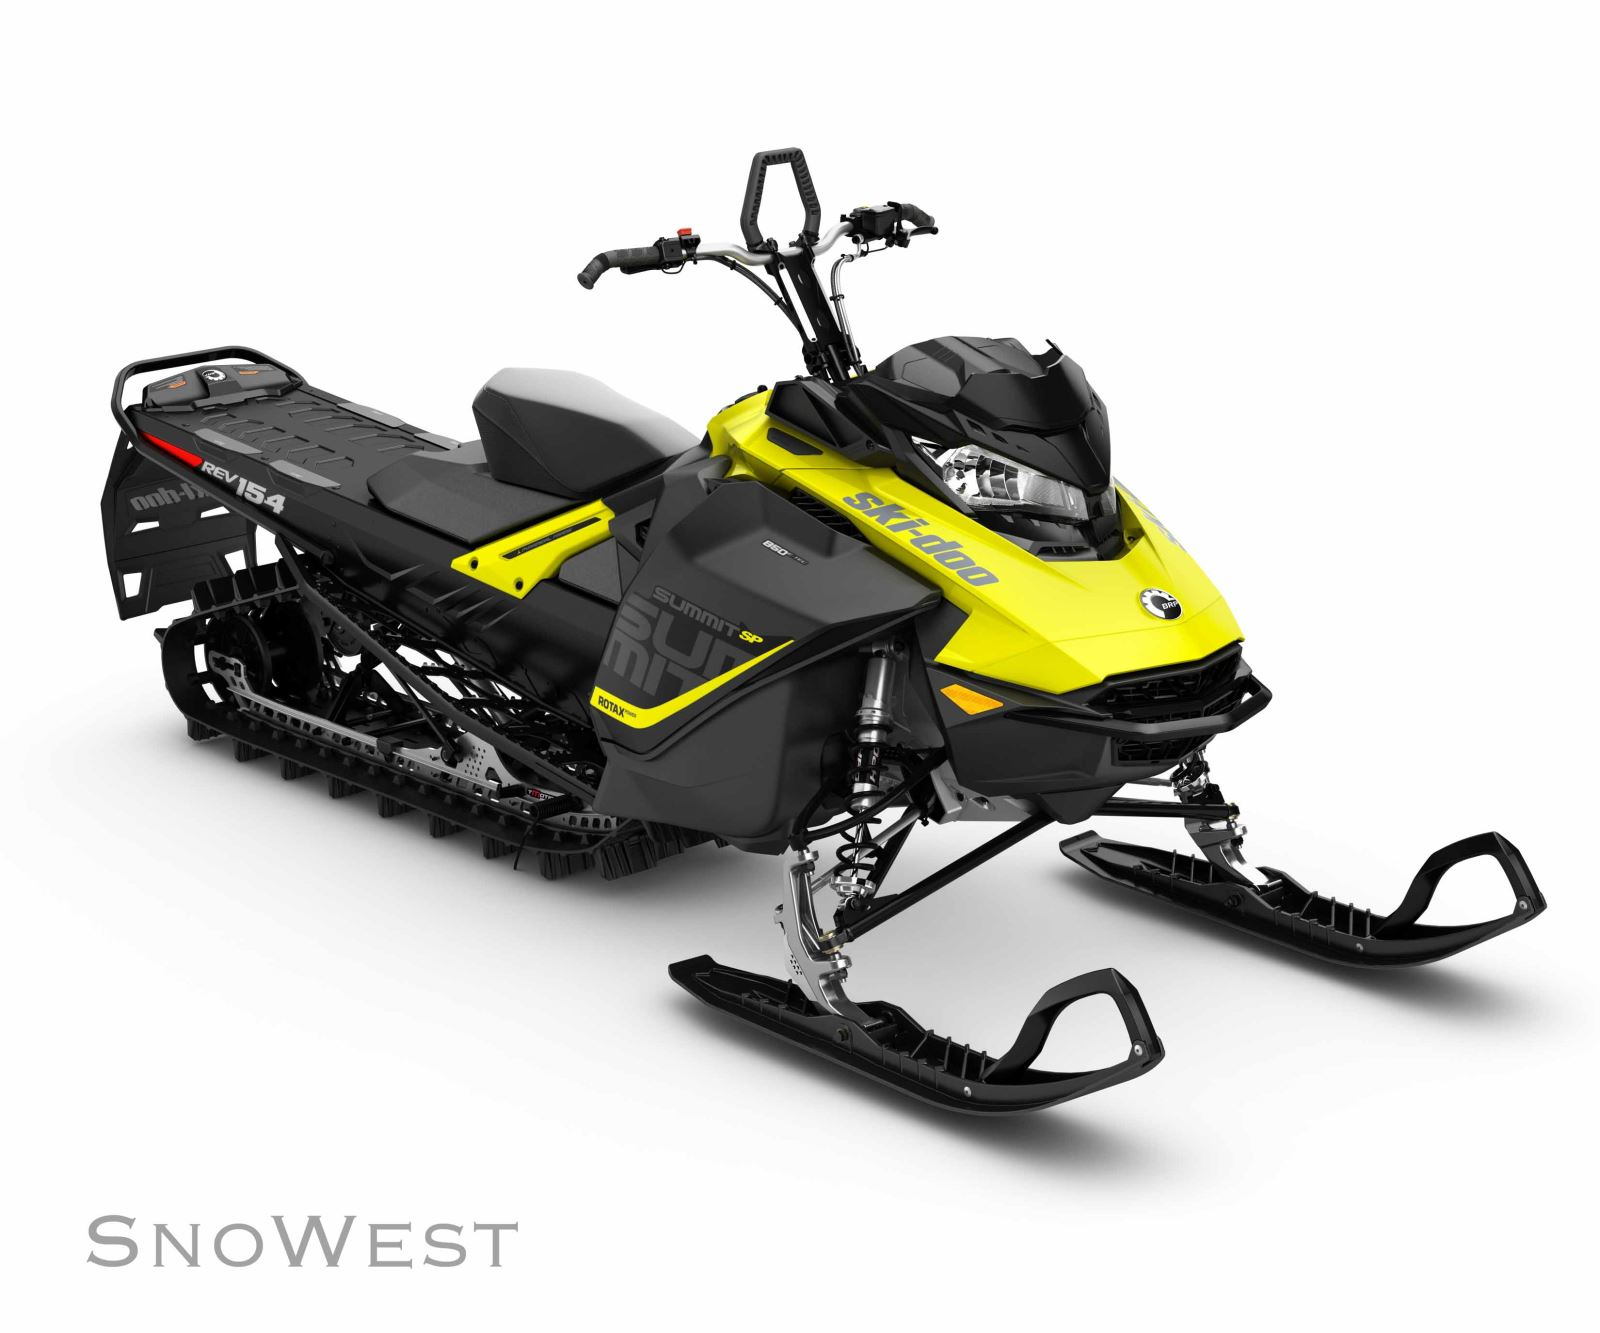 ski doo neu as - photo #2